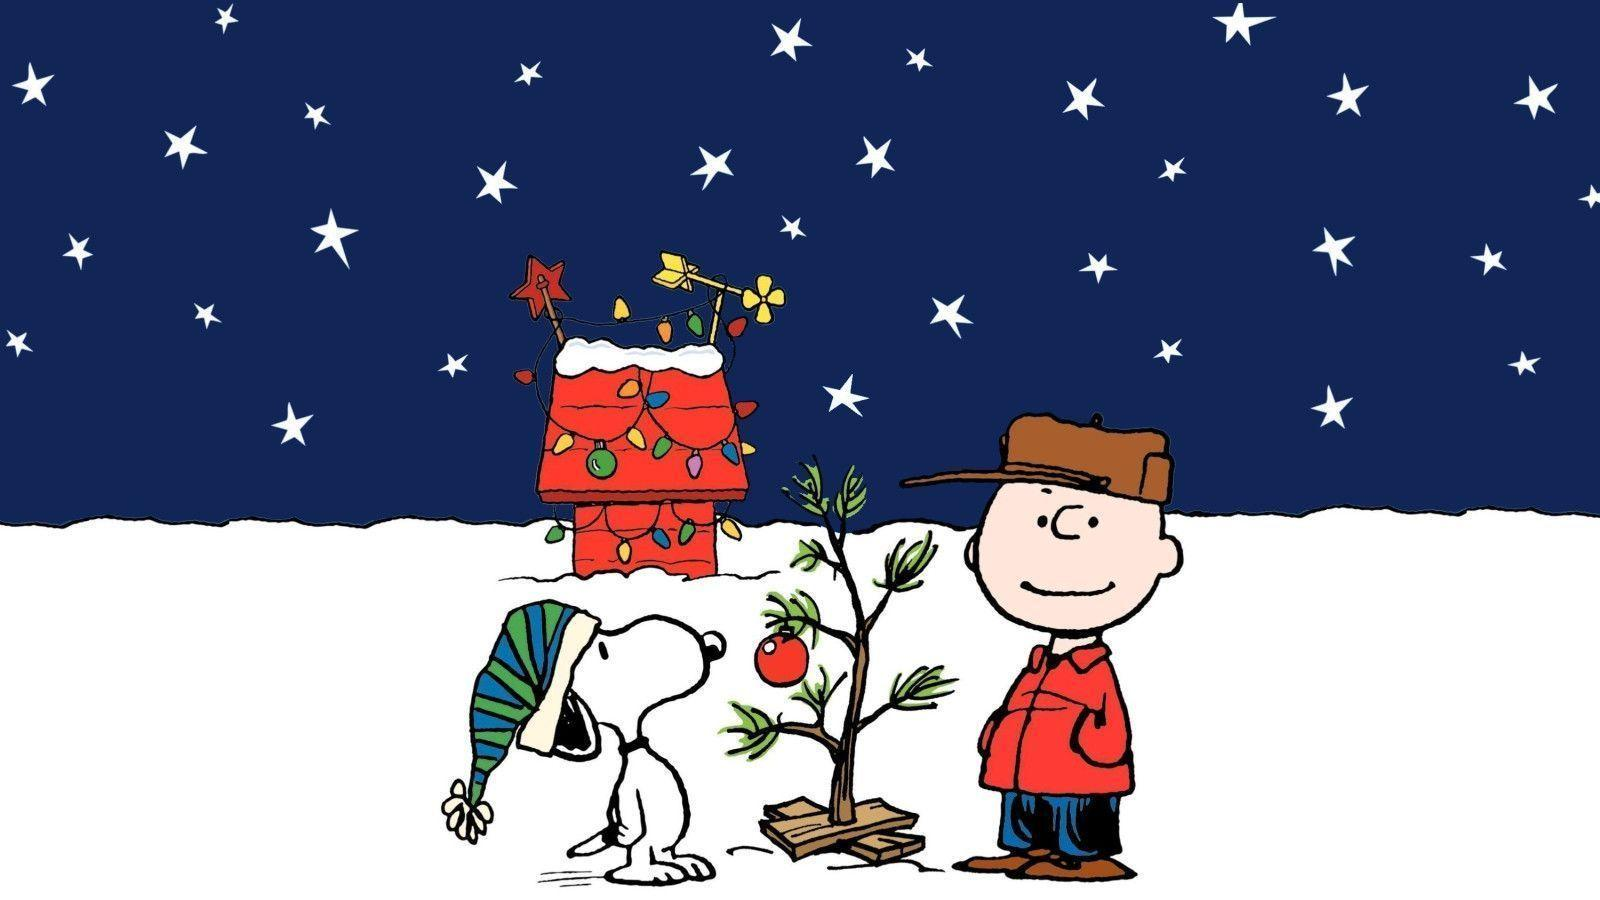 snoopy christmas wallpapers - wallpaper cave